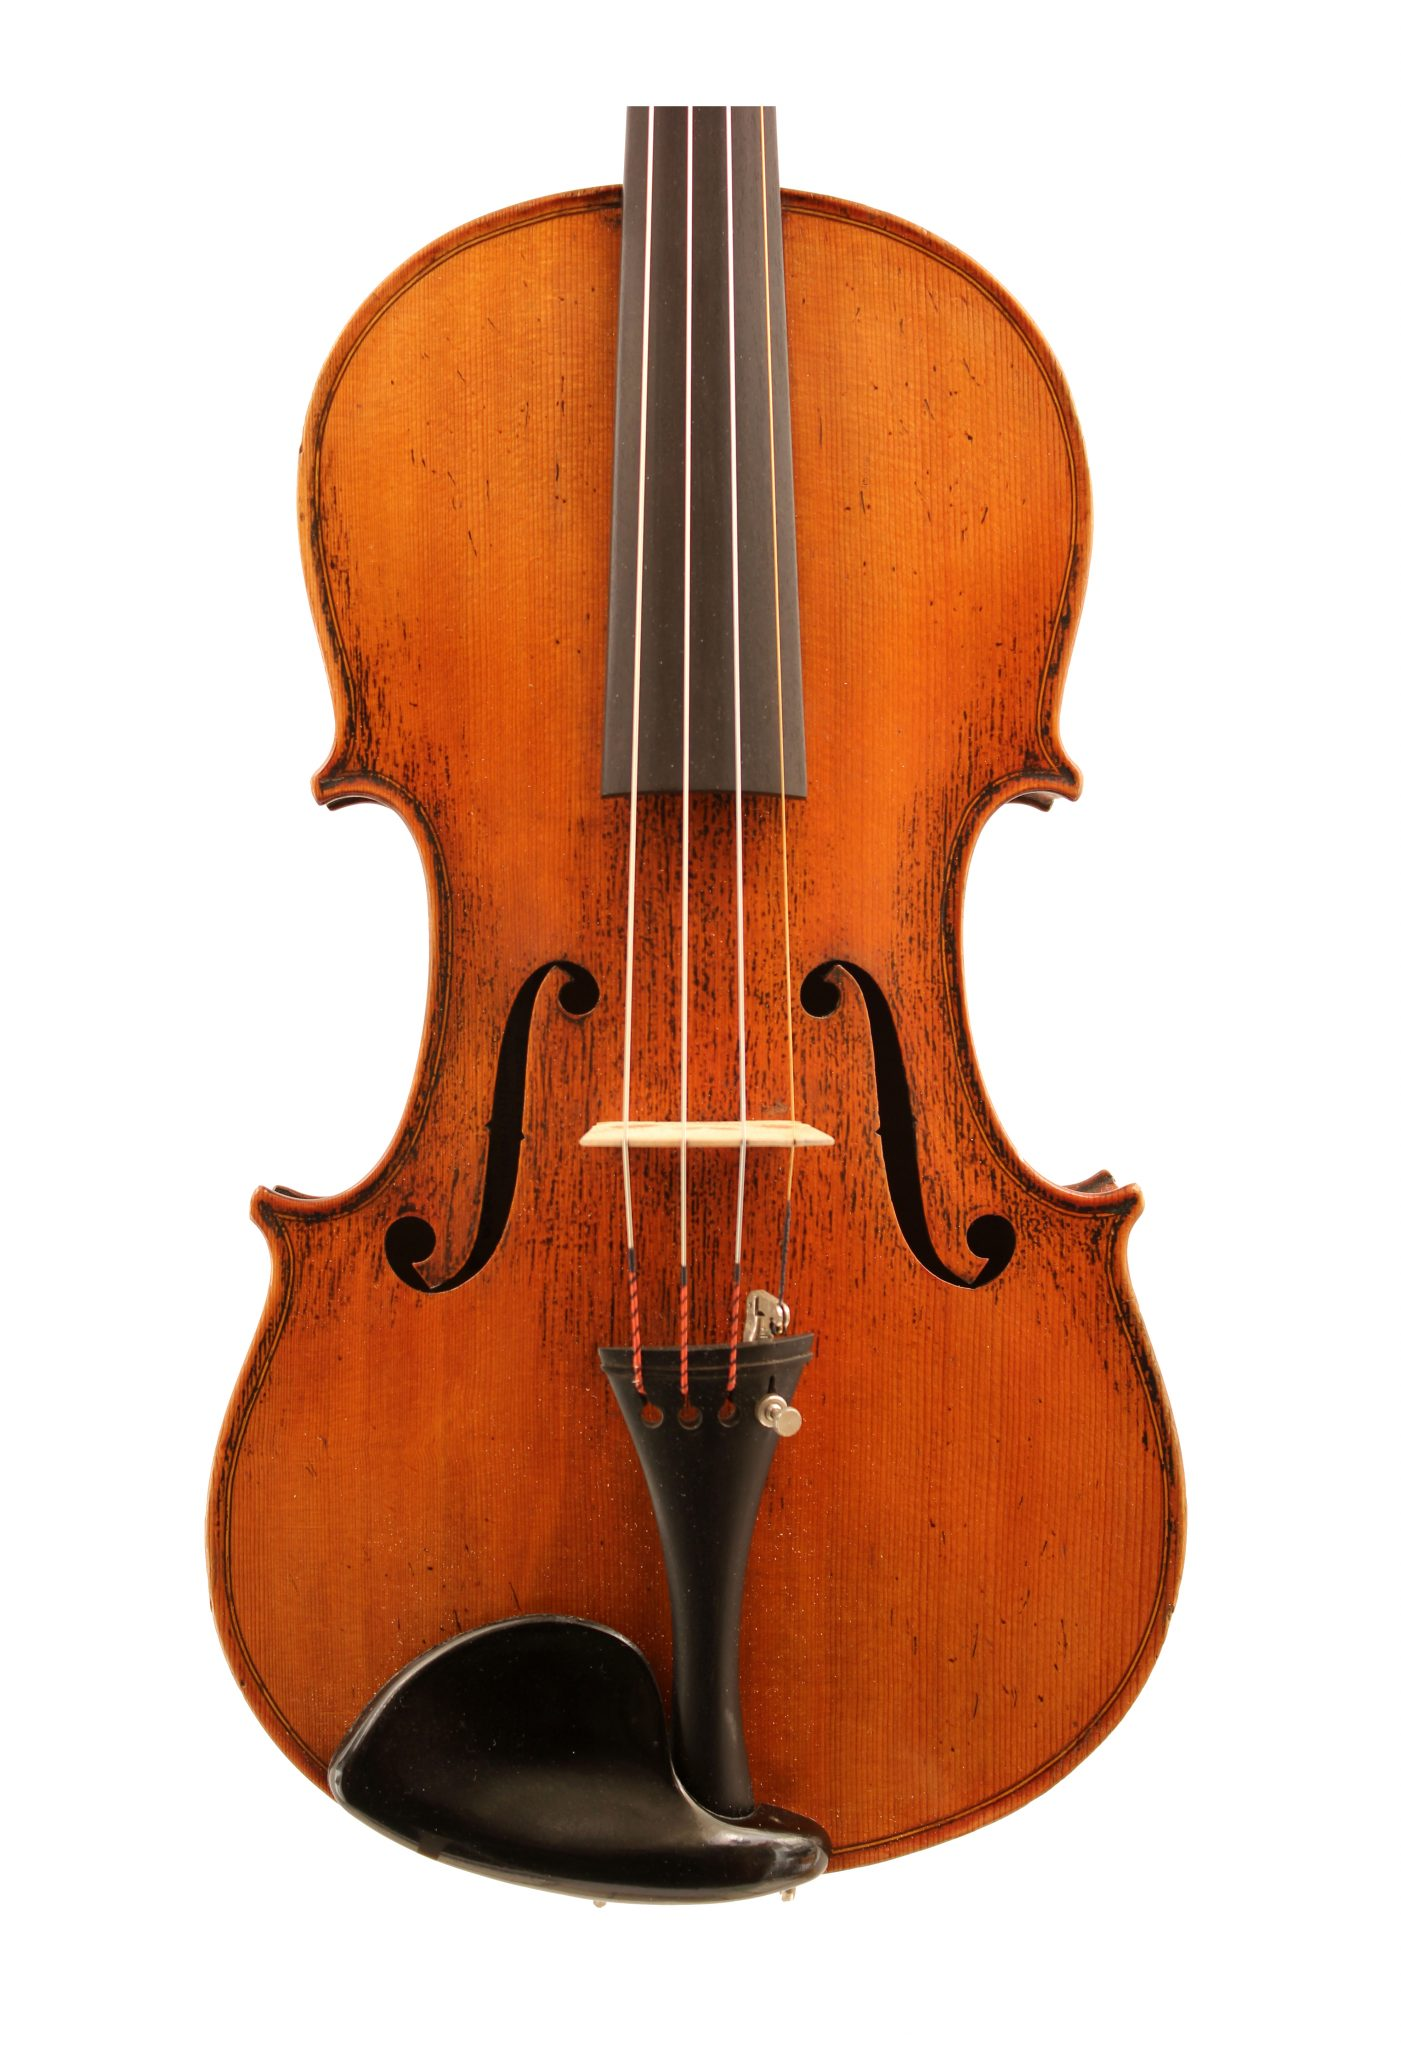 German violin c1920 for sale at Bridgewood and Neitzert London